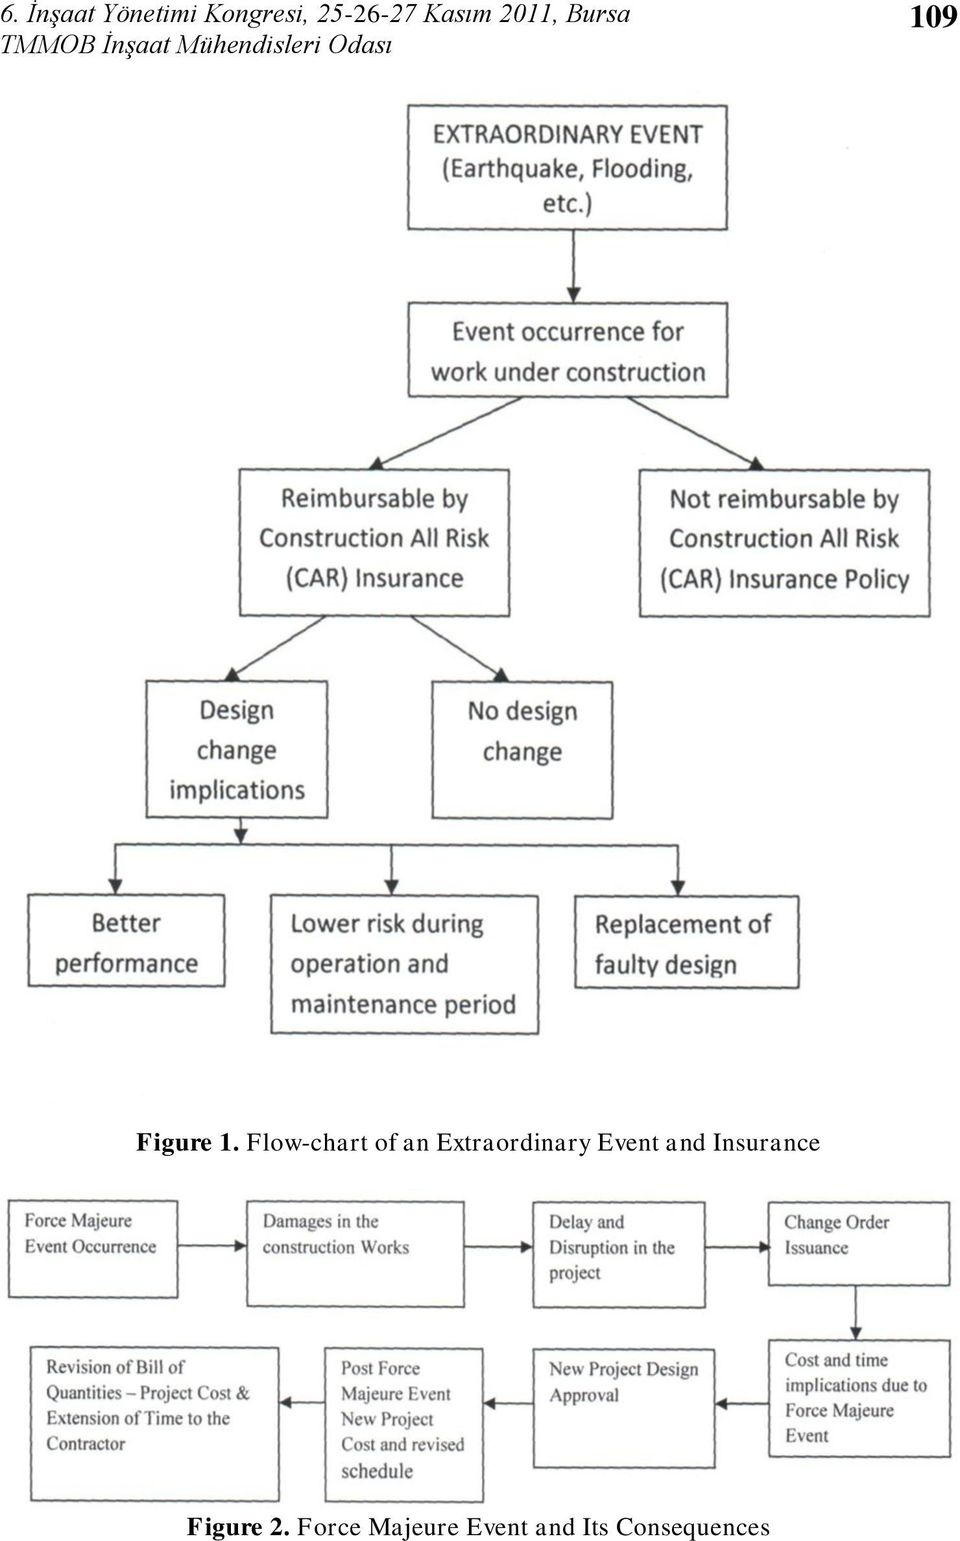 Flow-chart of an Extraordinary Event and